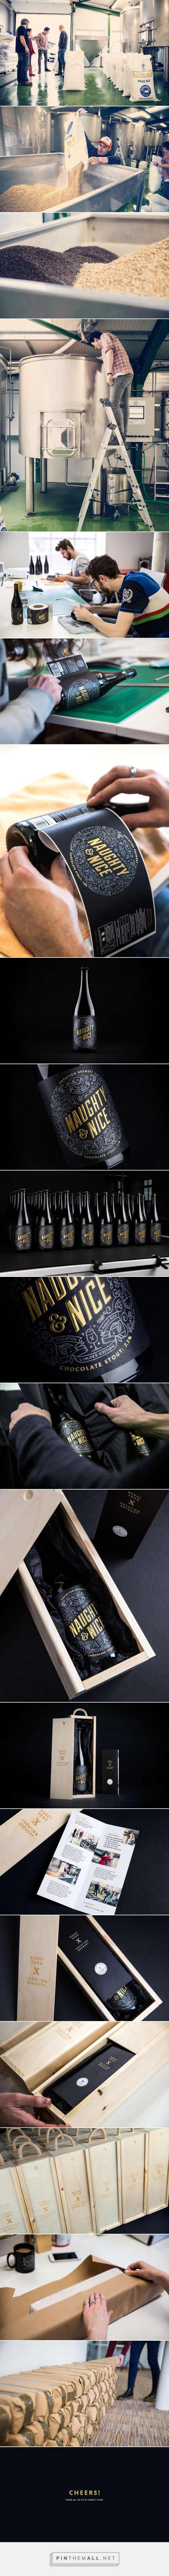 Naughty & Nice Beer Christmas Packaging designed by Robot Food​ - http://www.packagingoftheworld.com/2015/12/robot-food-x-vocation-brewery.html